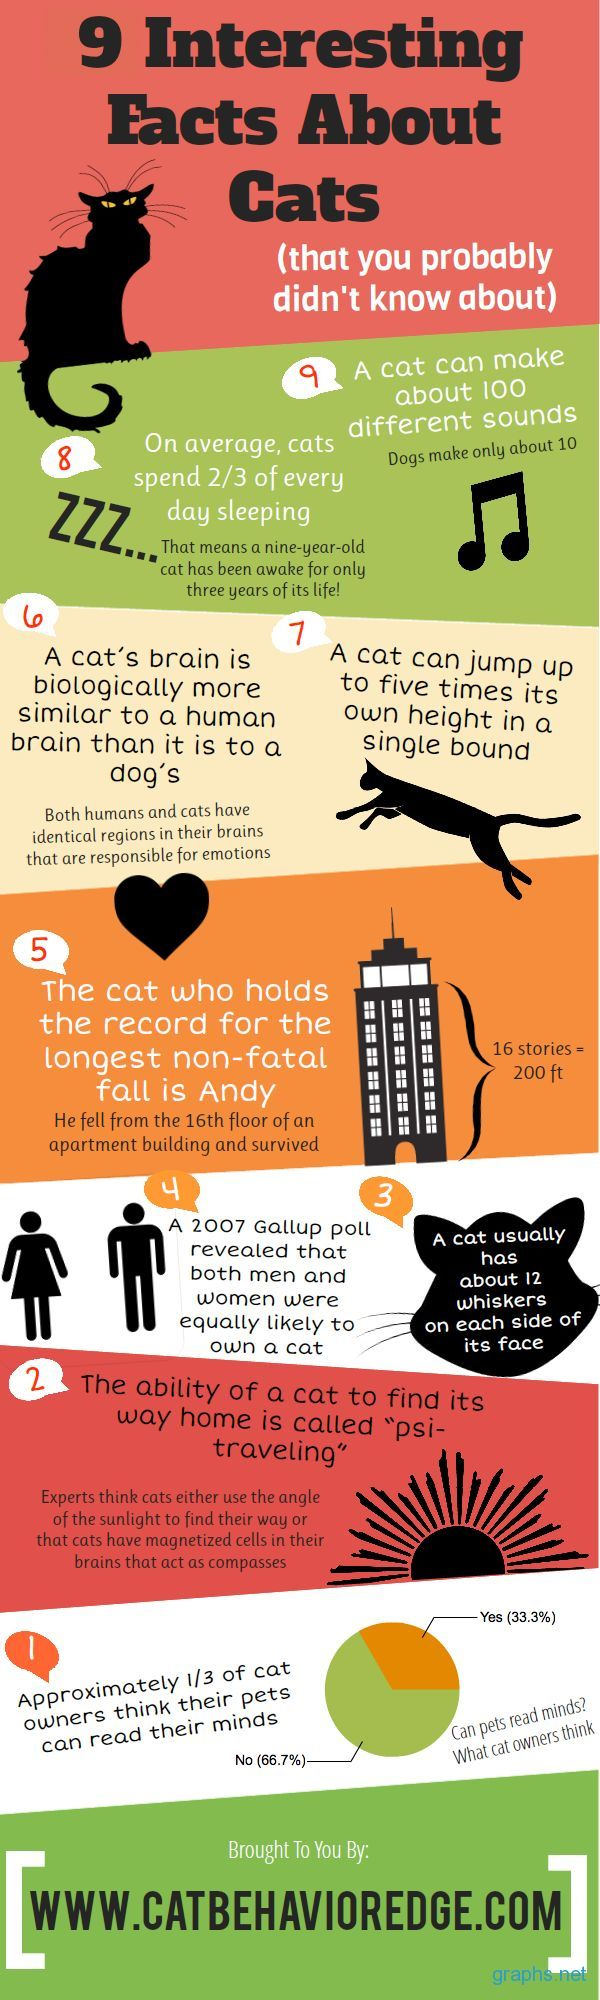 #interesting #cat #facts  #CatsNDogsApparel